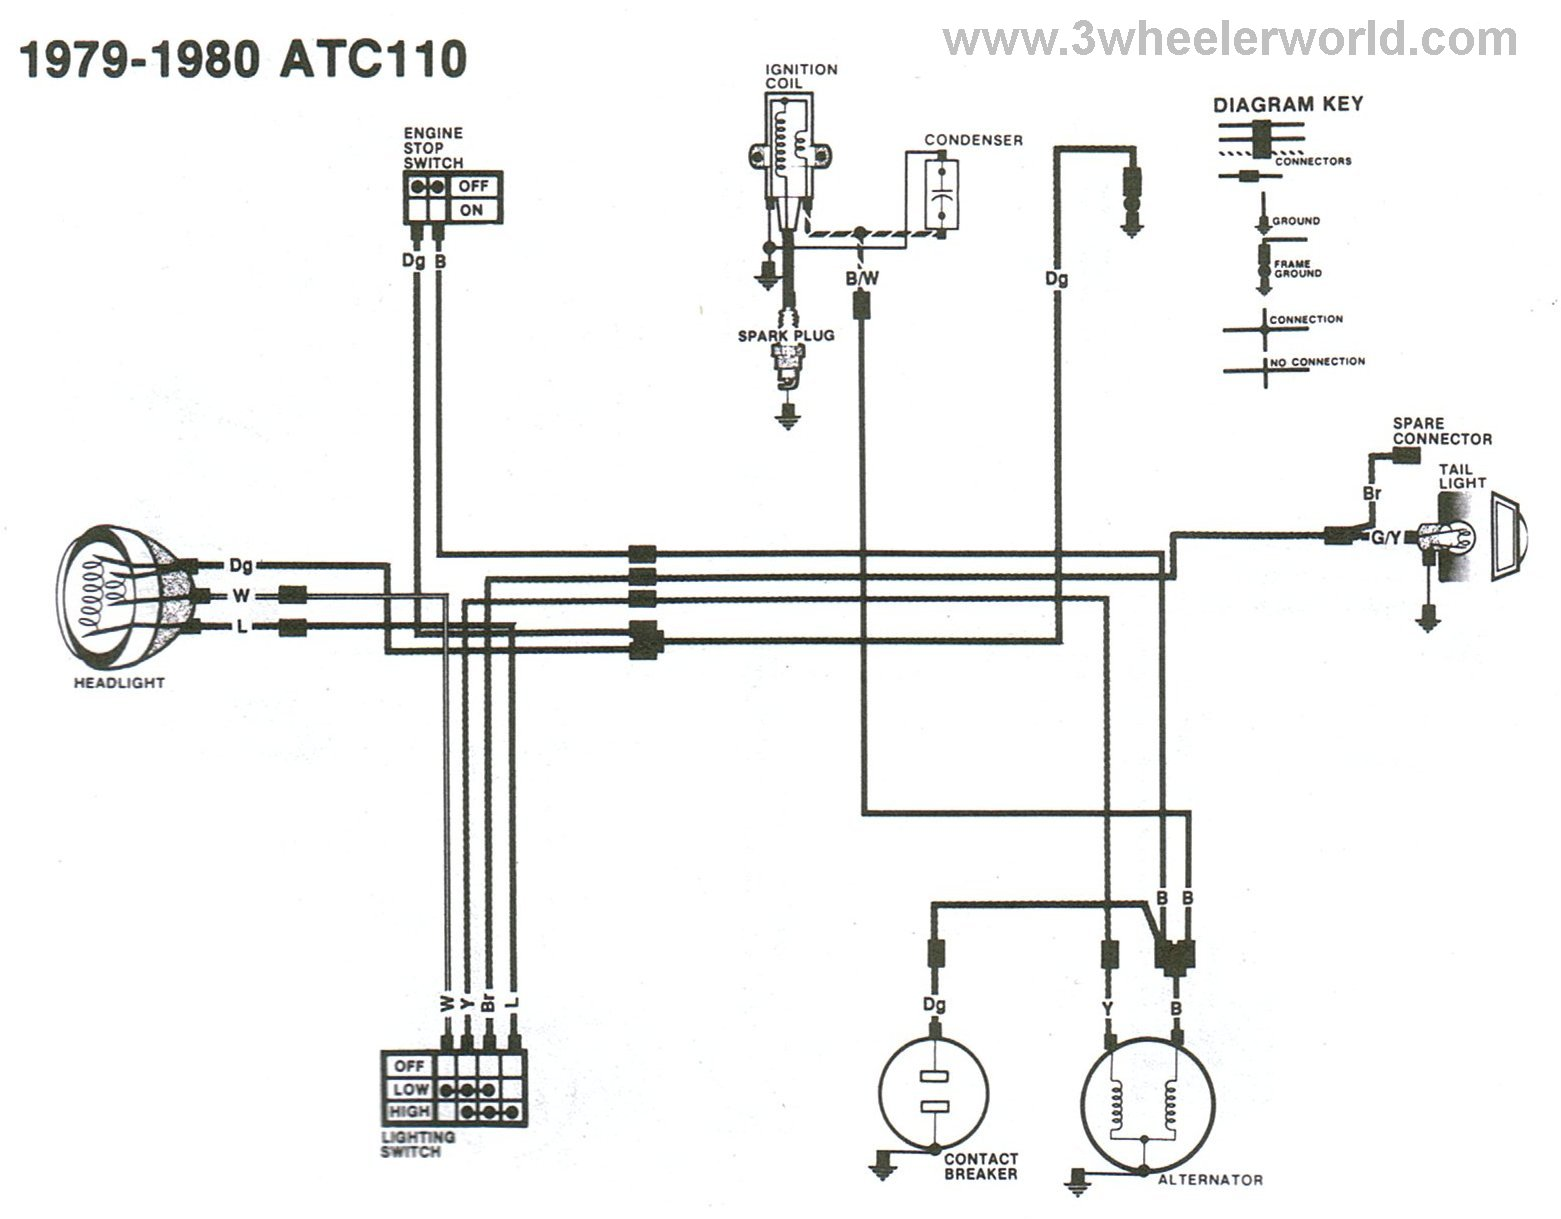 ATC110x79Thru80 3 wheeler world tech help honda wiring diagrams 1987 lt250r wiring diagram at crackthecode.co